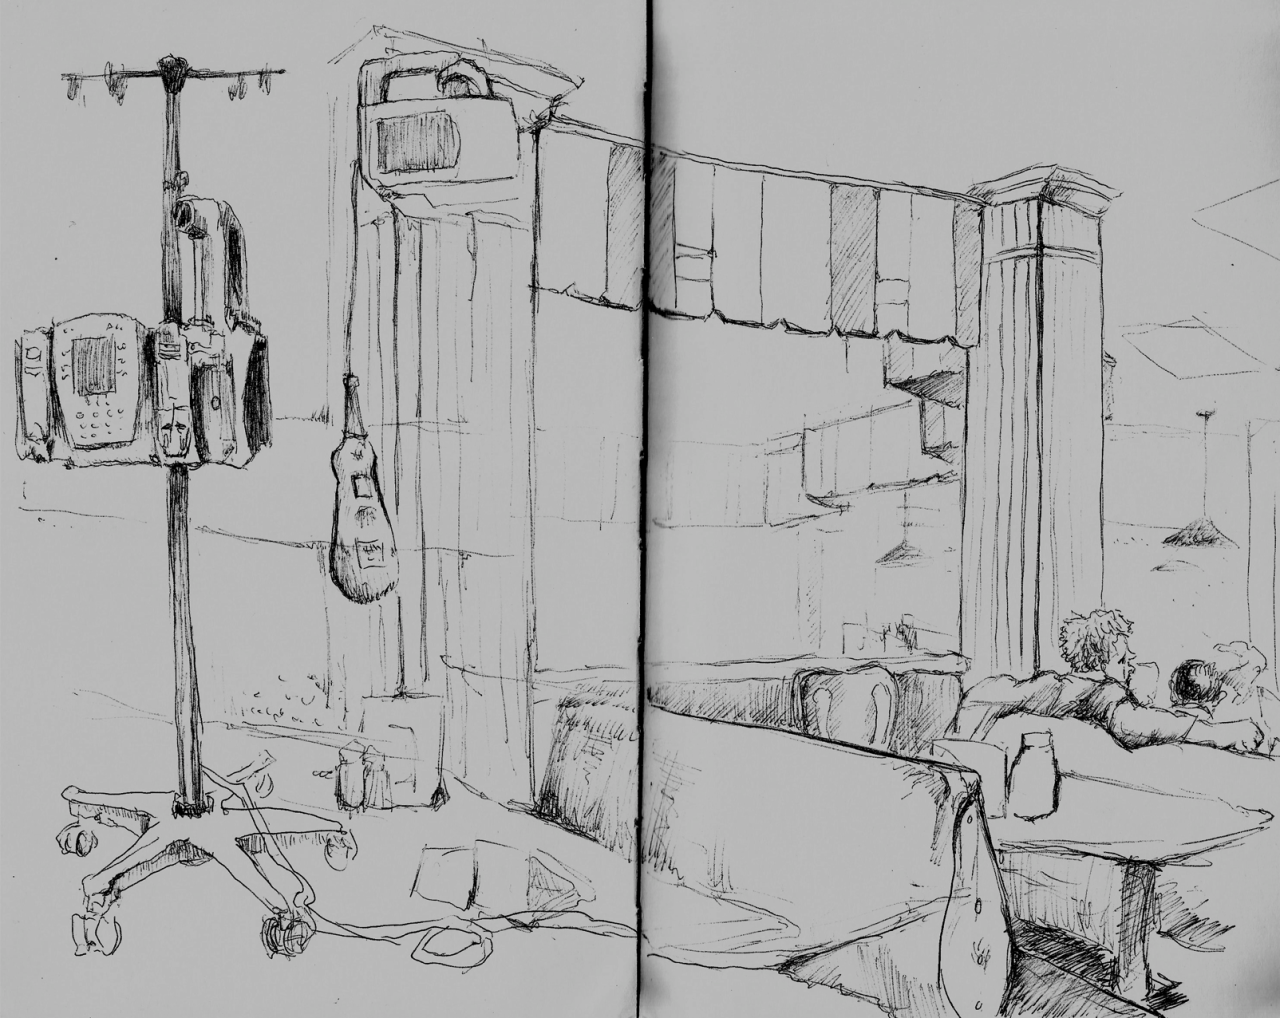 Compilation of on-the-scene sketching from a hospital and an ice cream parlour when I went to get rabies shots. As you can imagine, it was quite the eventful day.